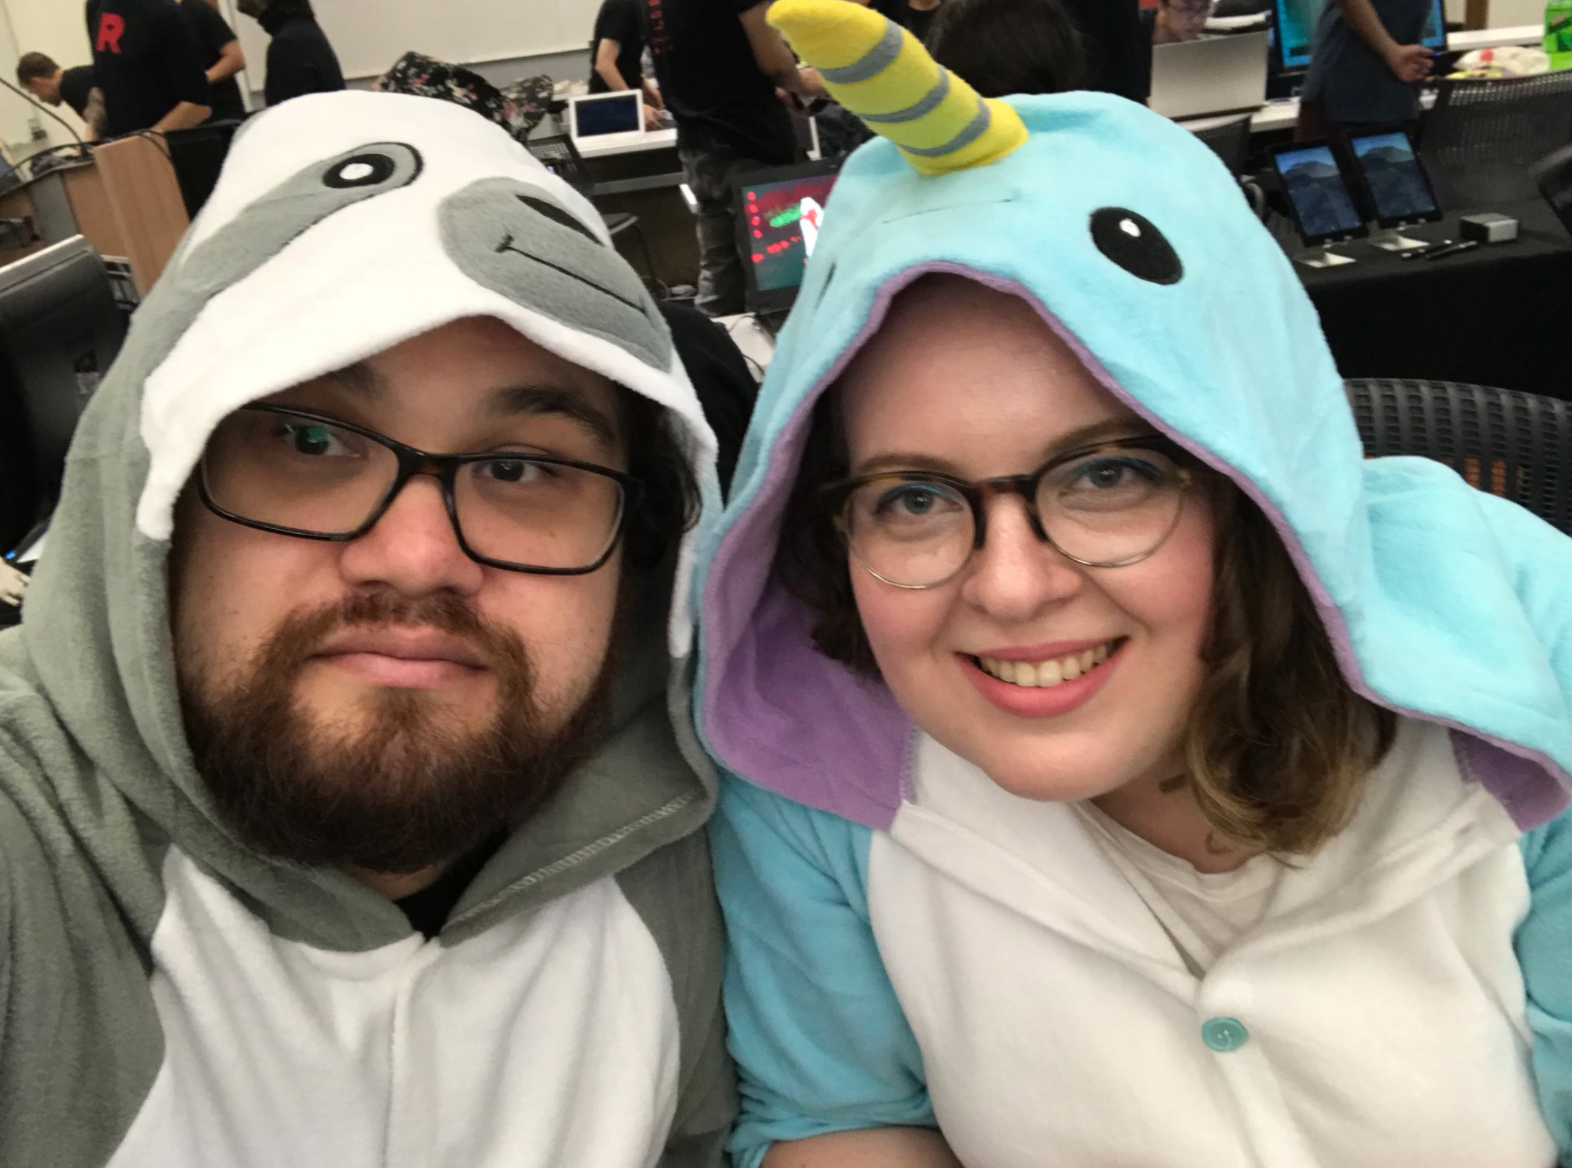 They may look innocent, but the Sloth and Narwhal are full of tricks!